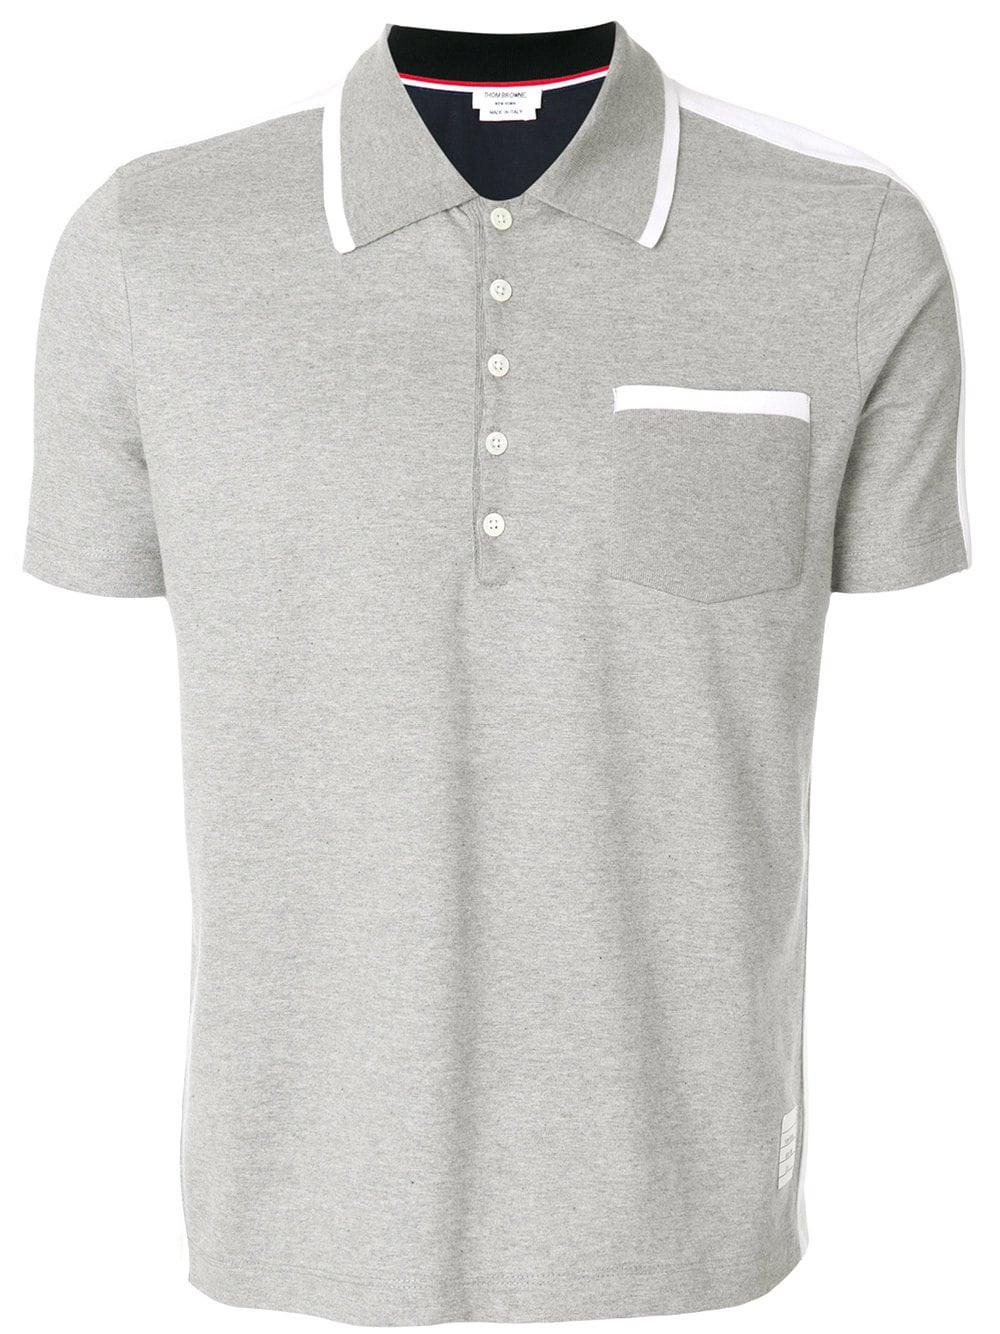 40a611c7 Lyst - Thom Browne Bicolor Half-and-half Jersey Polo for Men